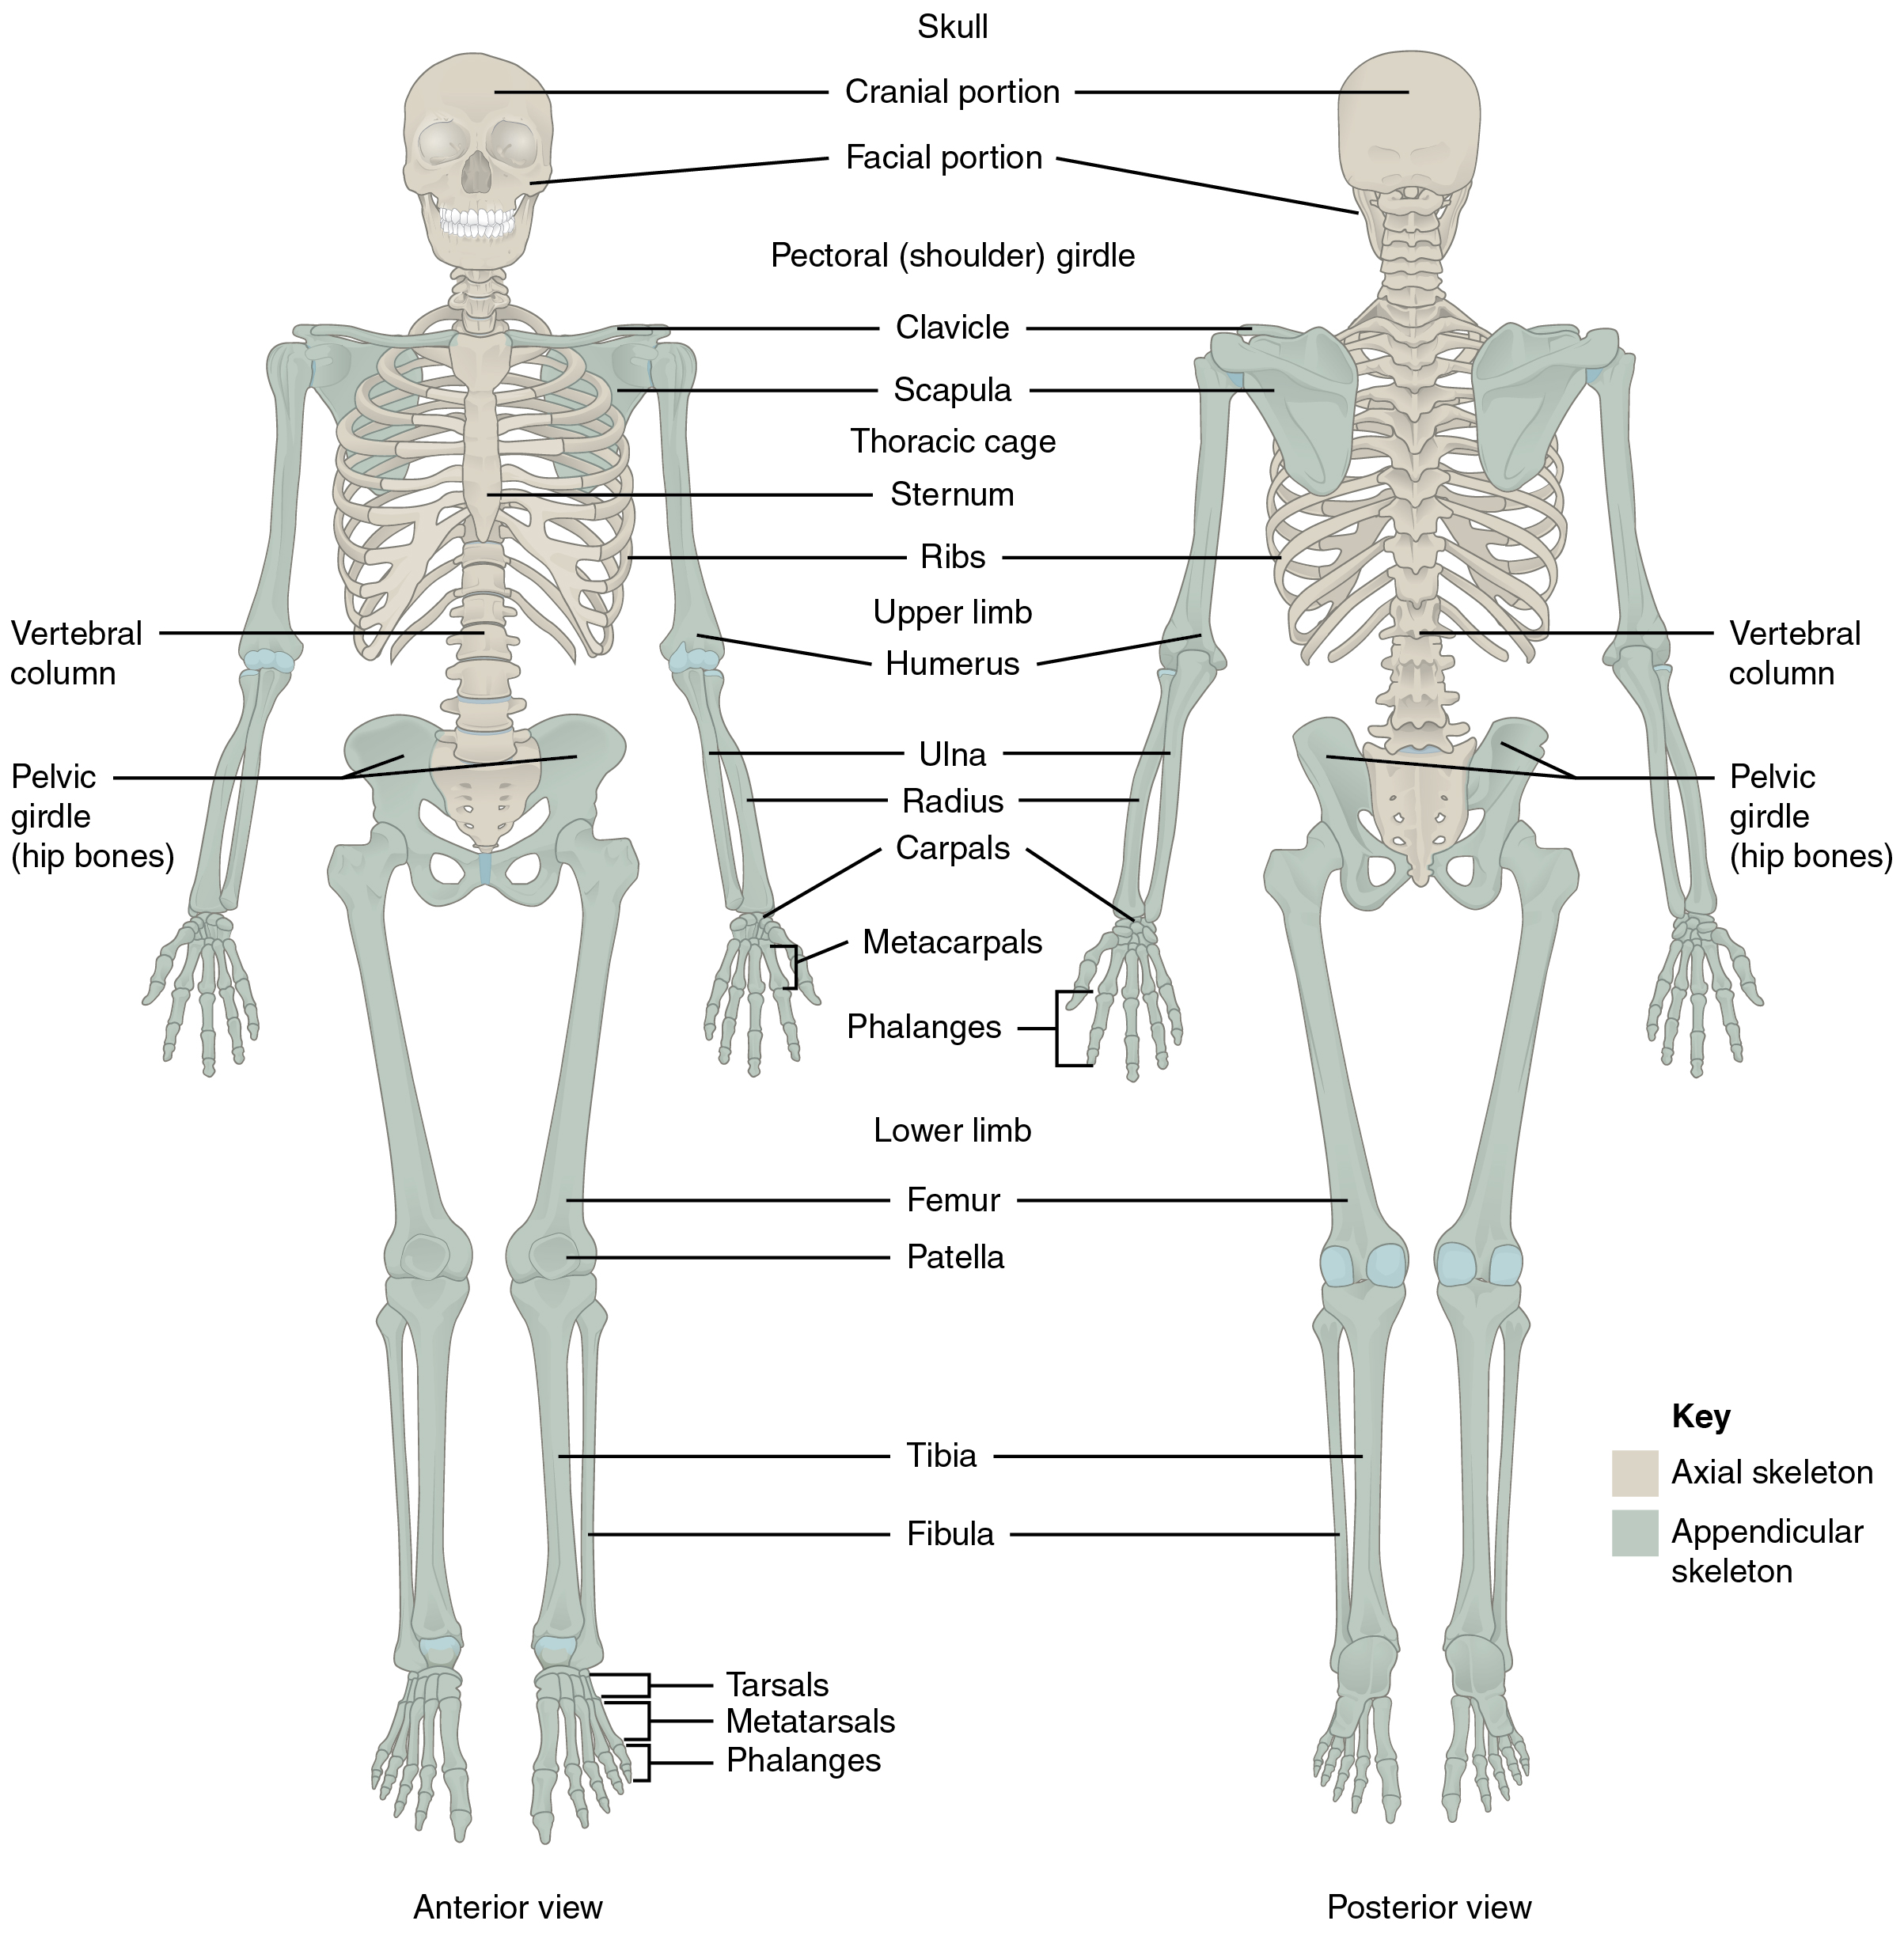 divisions of the skeletal system · anatomy and physiology, Skeleton